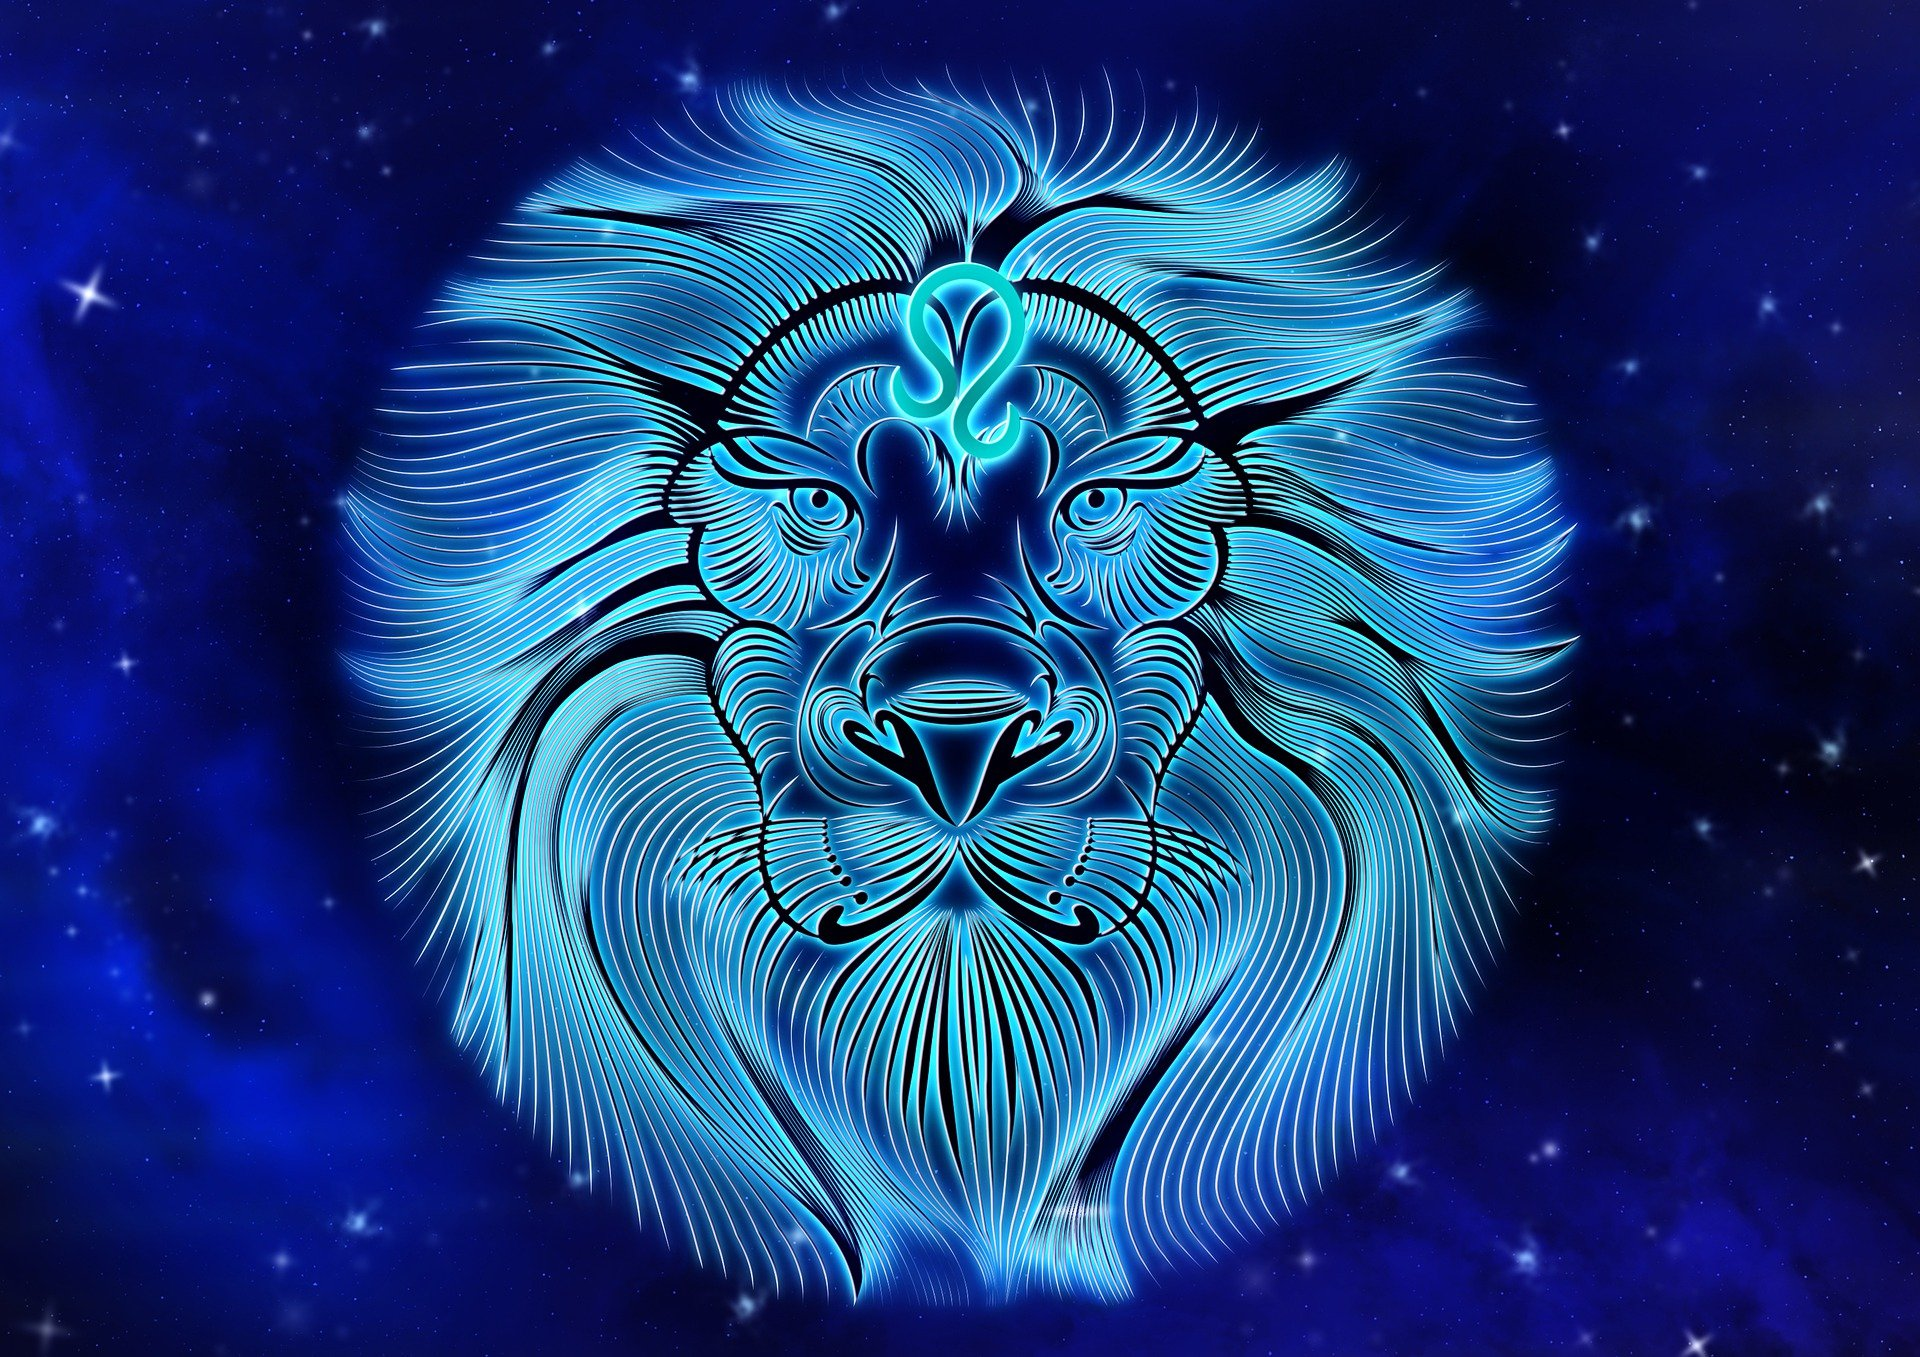 Pictured - A depiction of a Leo star sign | Source: Pixabay